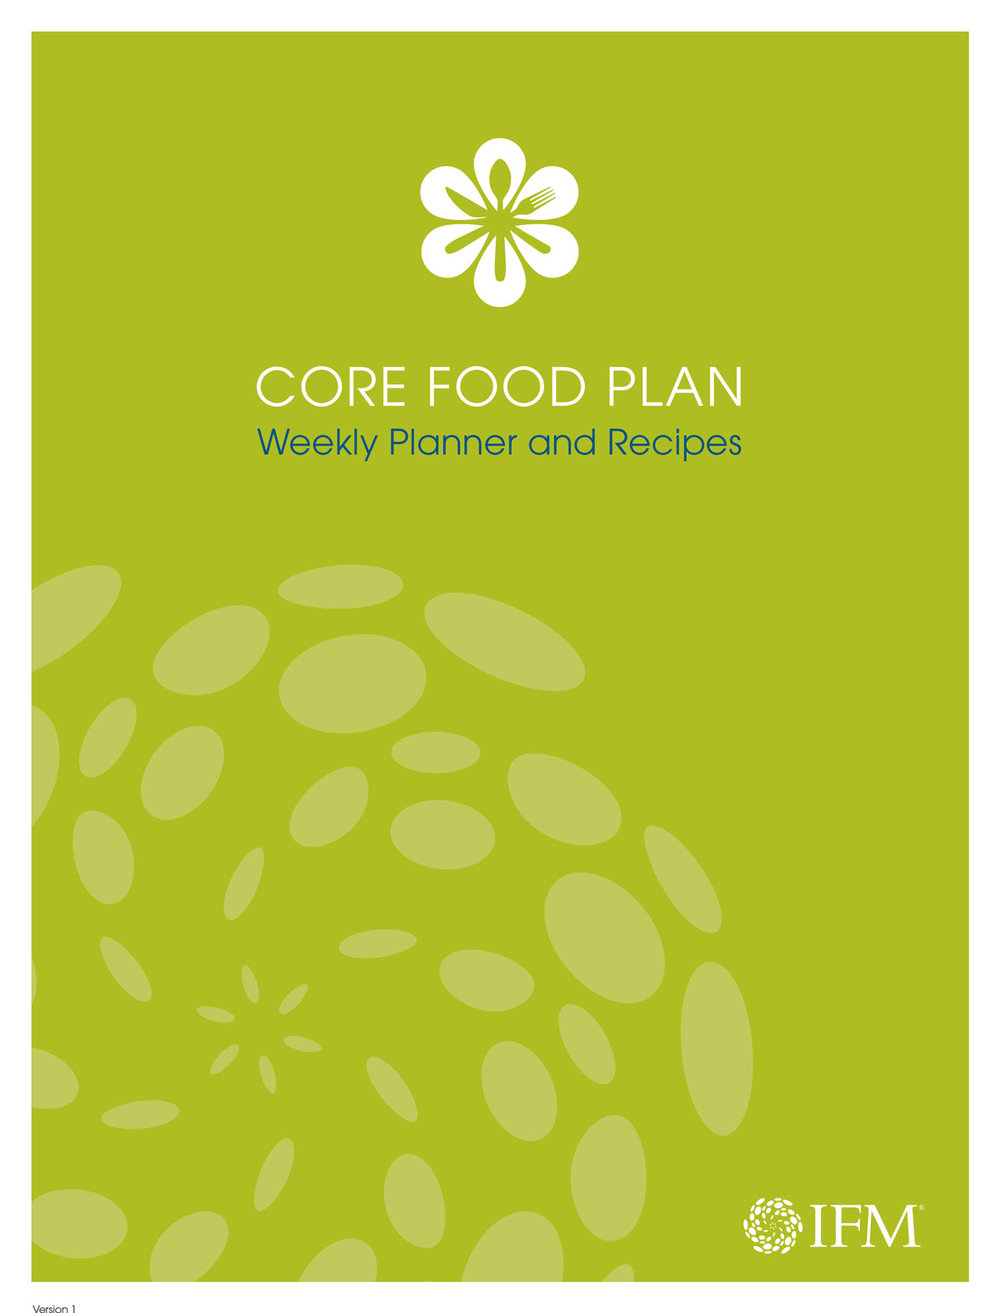 Core_Food_Plan_Weekly_Planner_and_Recipes_Image.jpg